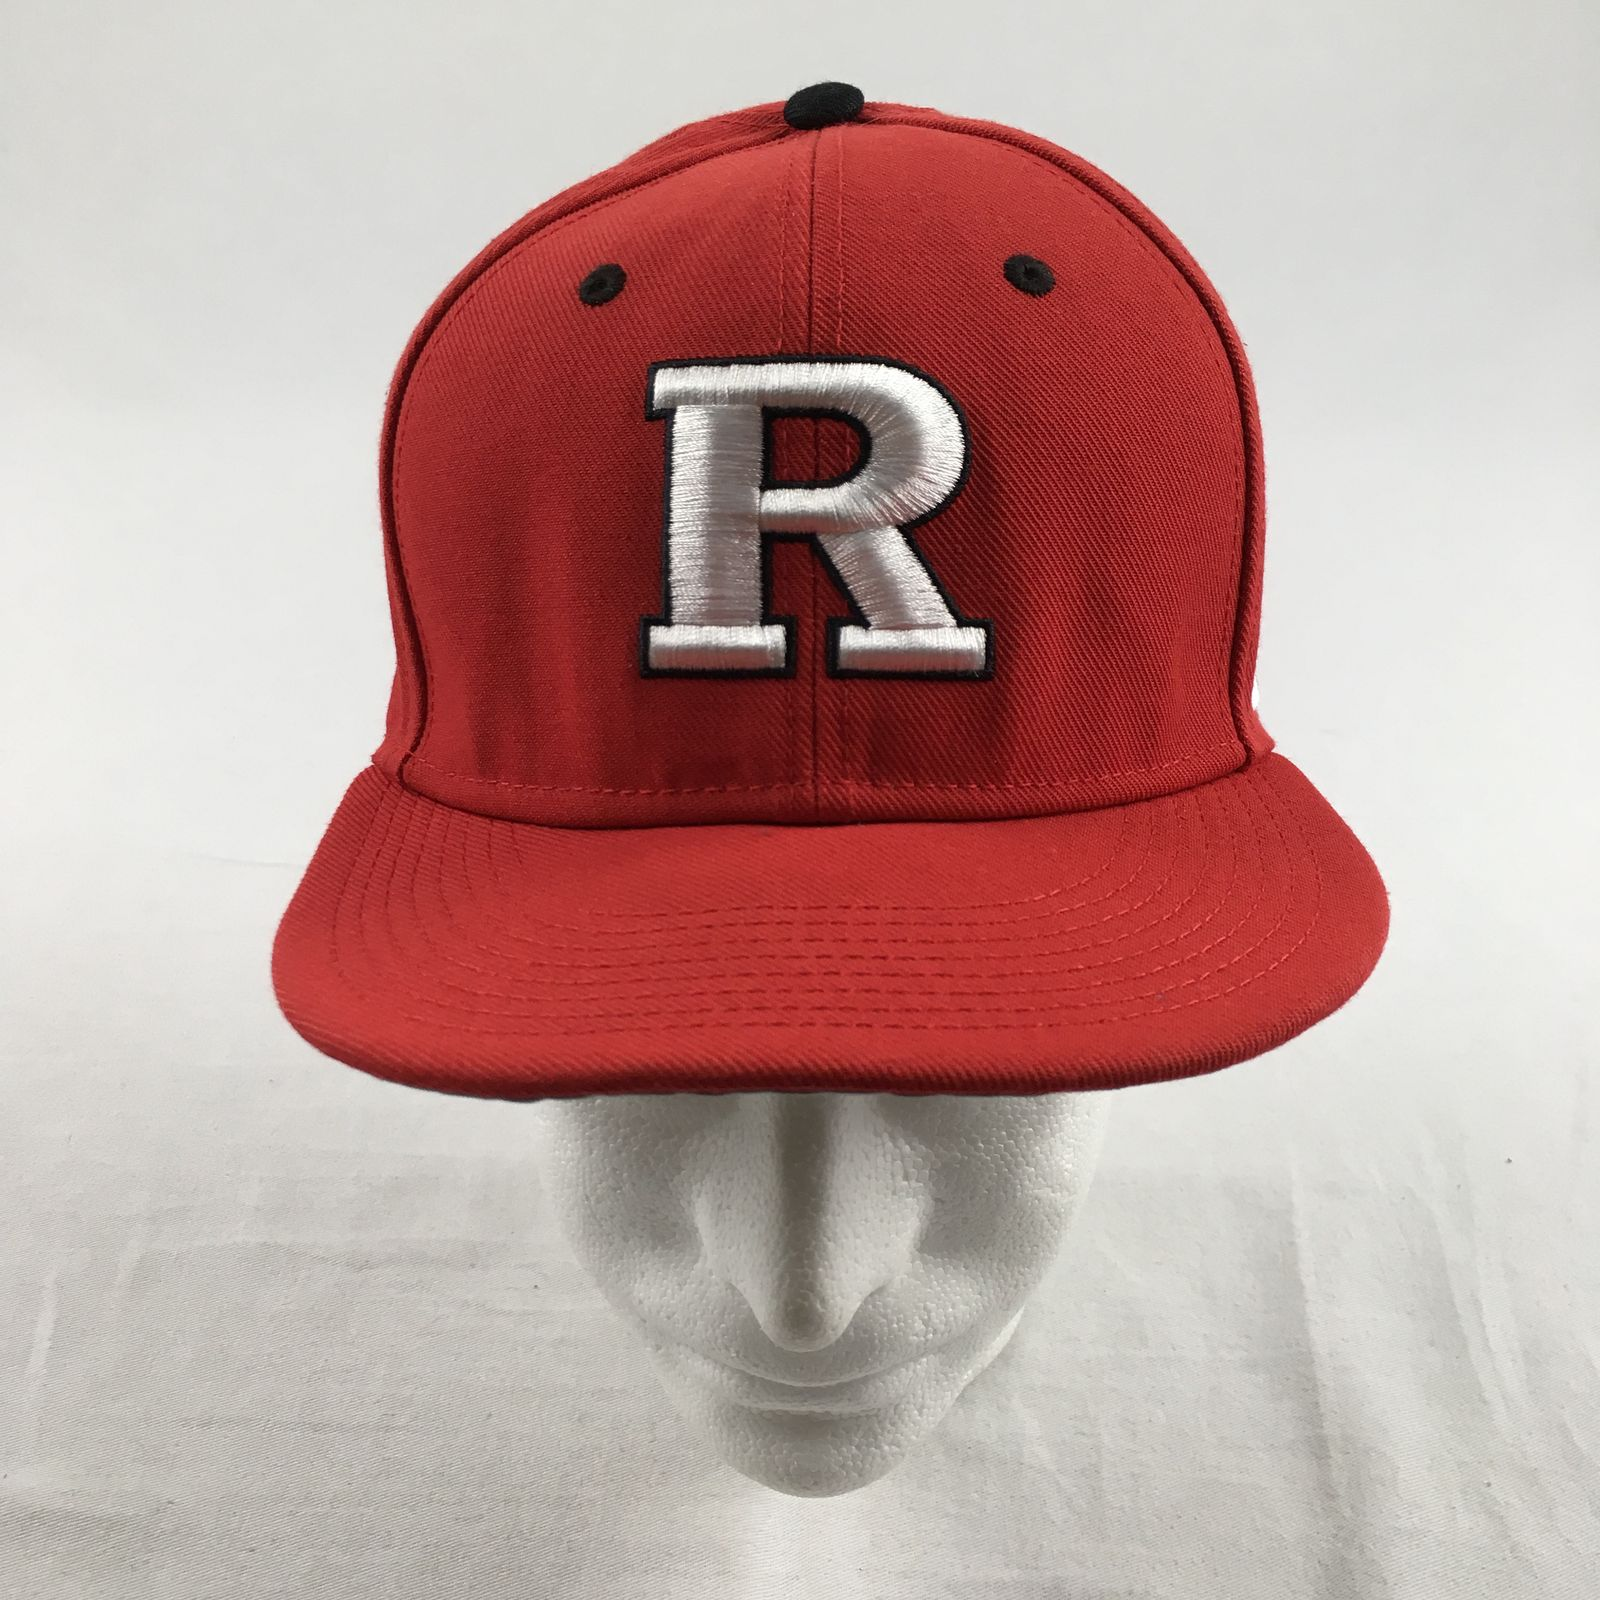 Details about Nike Rutgers Scarlet Knights - Red Fitted Hat (Multiple  Sizes) - Used 24e1bf78a20